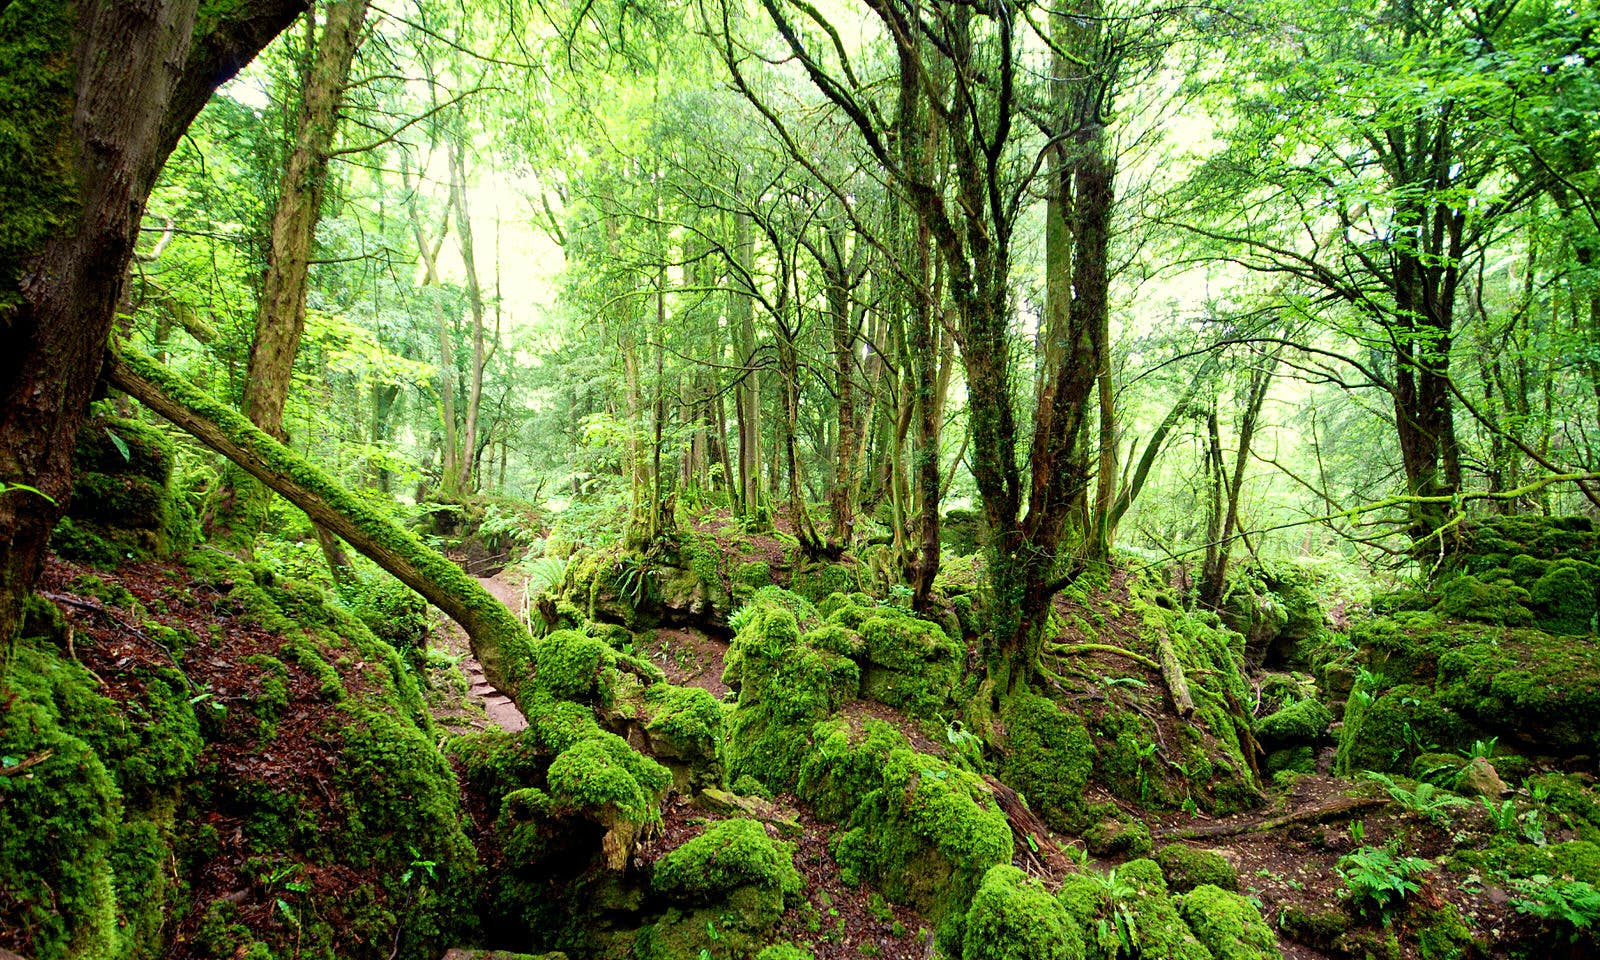 A forest filled with moss-covered trees and rocks in Puzzlewood